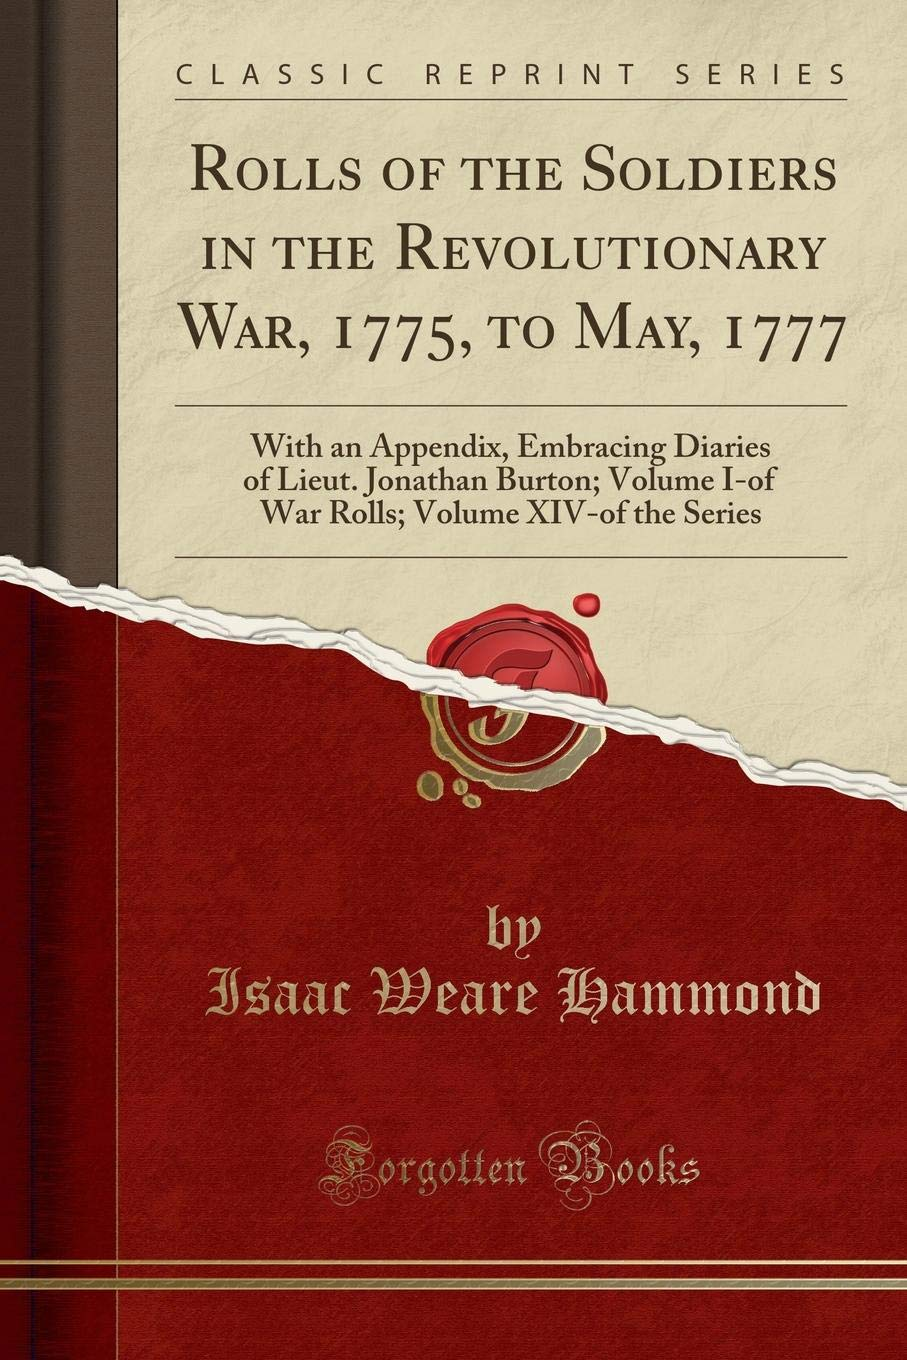 Download Rolls of the Soldiers in the Revolutionary War, 1775, to May, 1777: With an Appendix, Embracing Diaries of Lieut. Jonathan Burton; Volume I-of War Rolls; Volume XIV-of the Series (Classic Reprint) pdf